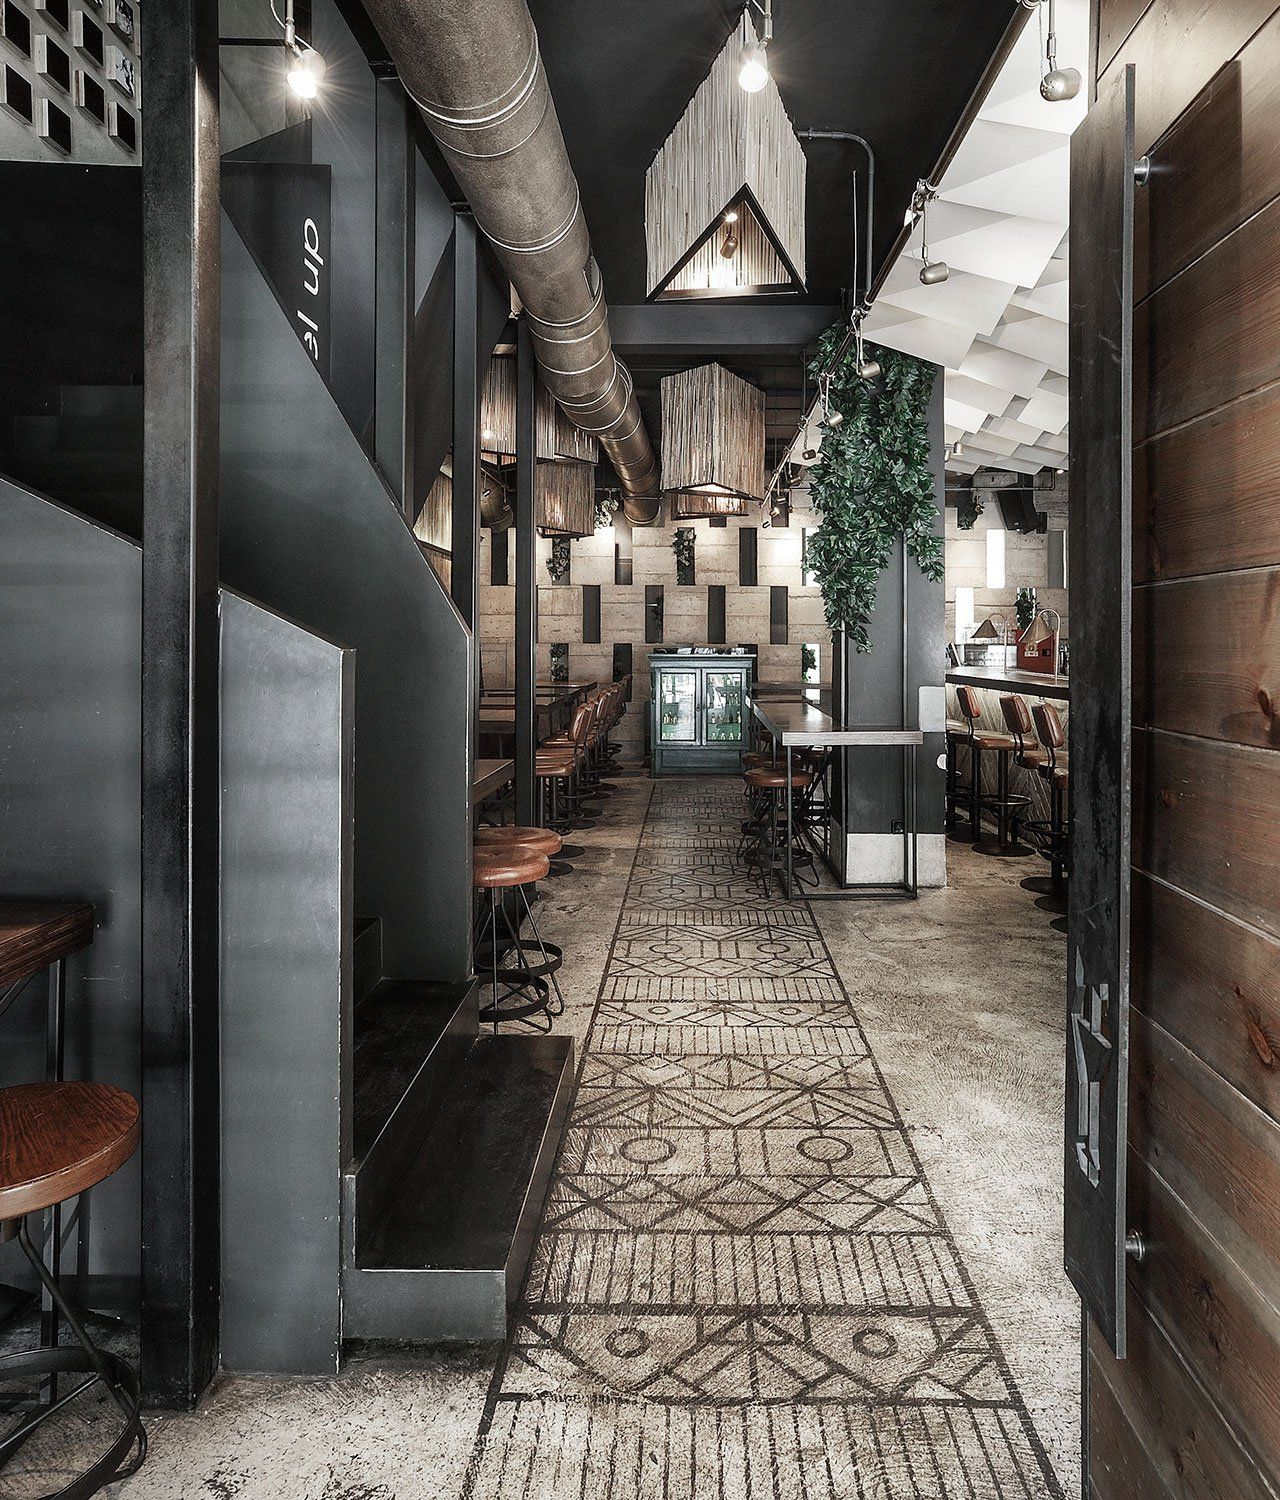 Strange horse cheval bar and restaurant in thessaloniki by ark4lab of architecture yatzer